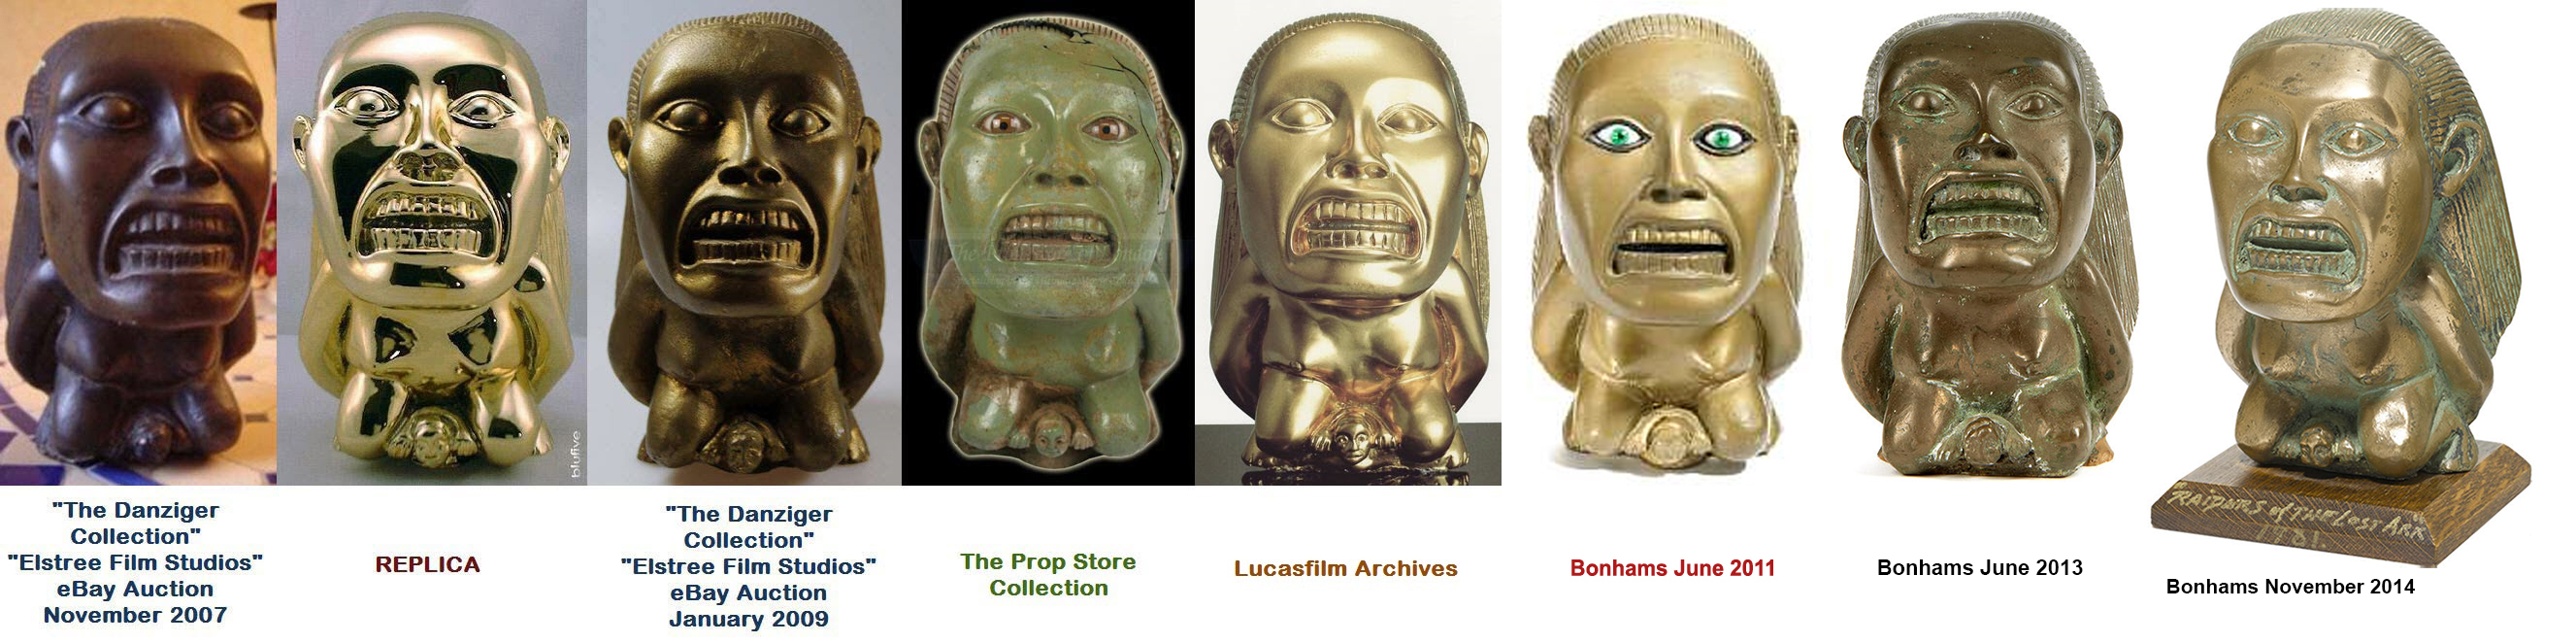 Raiders-of-the-Lost-Ark-Fertility-Idol-Movie-Prop-Comparison-Original-Replica-ScreenUsed-Studio-LucasFilm-2014-HR